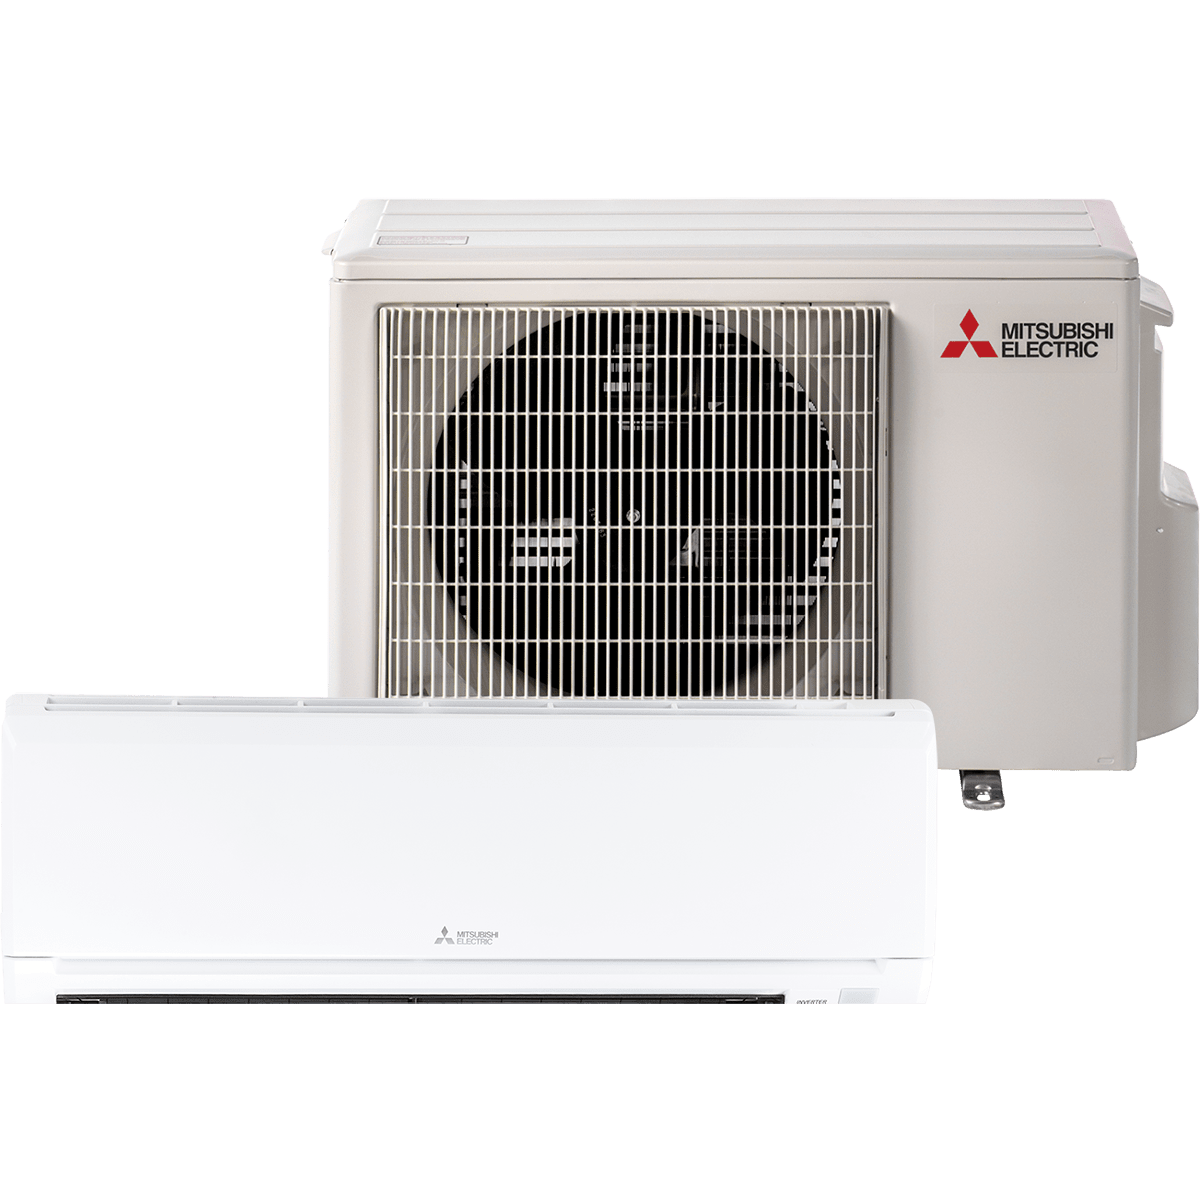 mitsubishi mz gl12na 12000 btu mini split air conditioner with heat - Air Conditioner And Heater